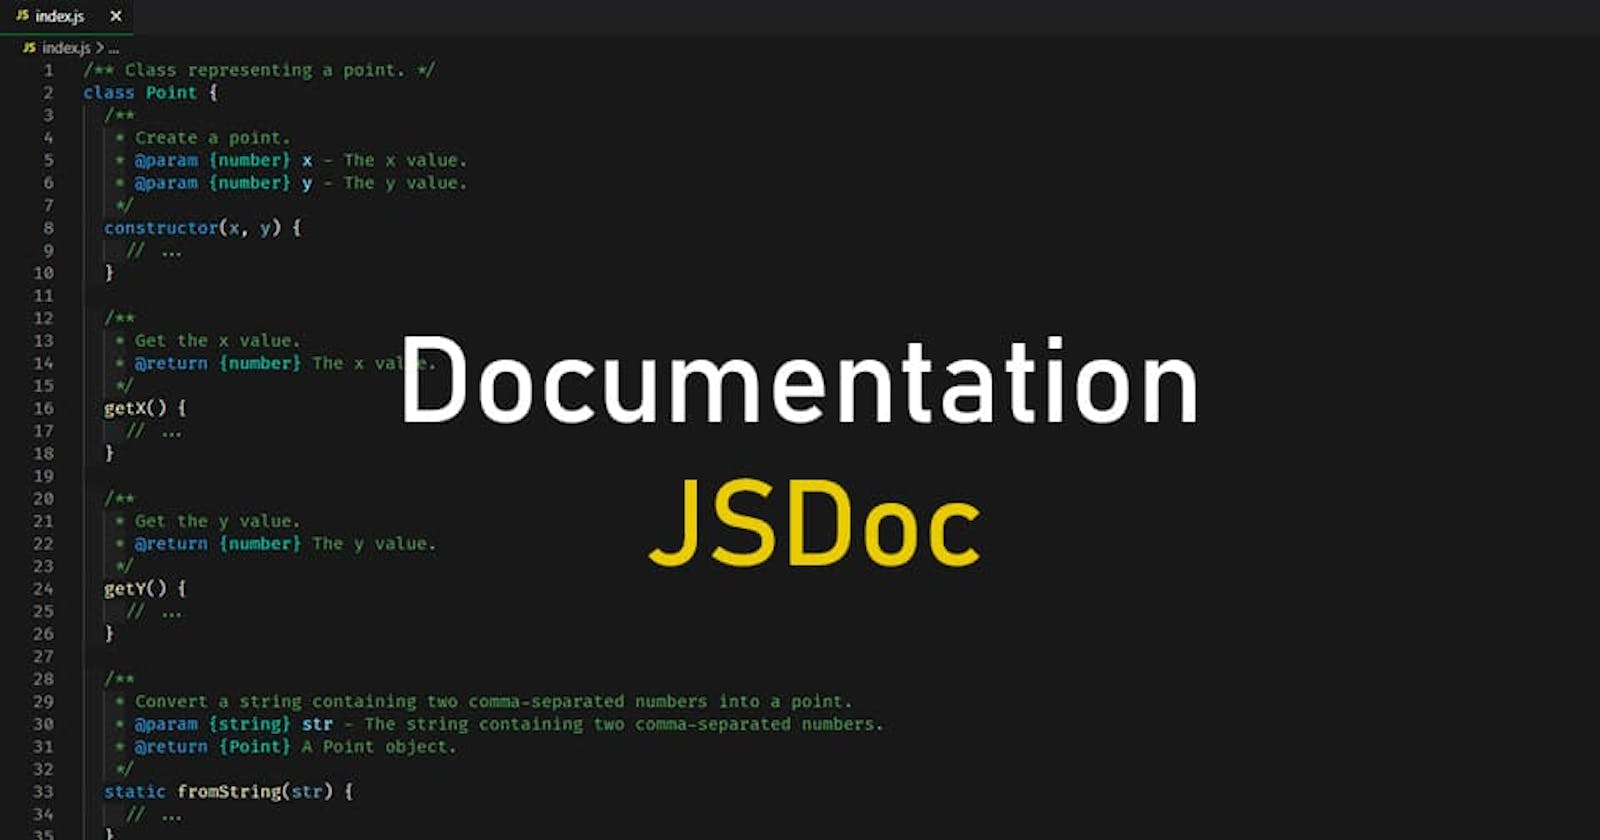 Generation of project documentation in various formats: JSDoc